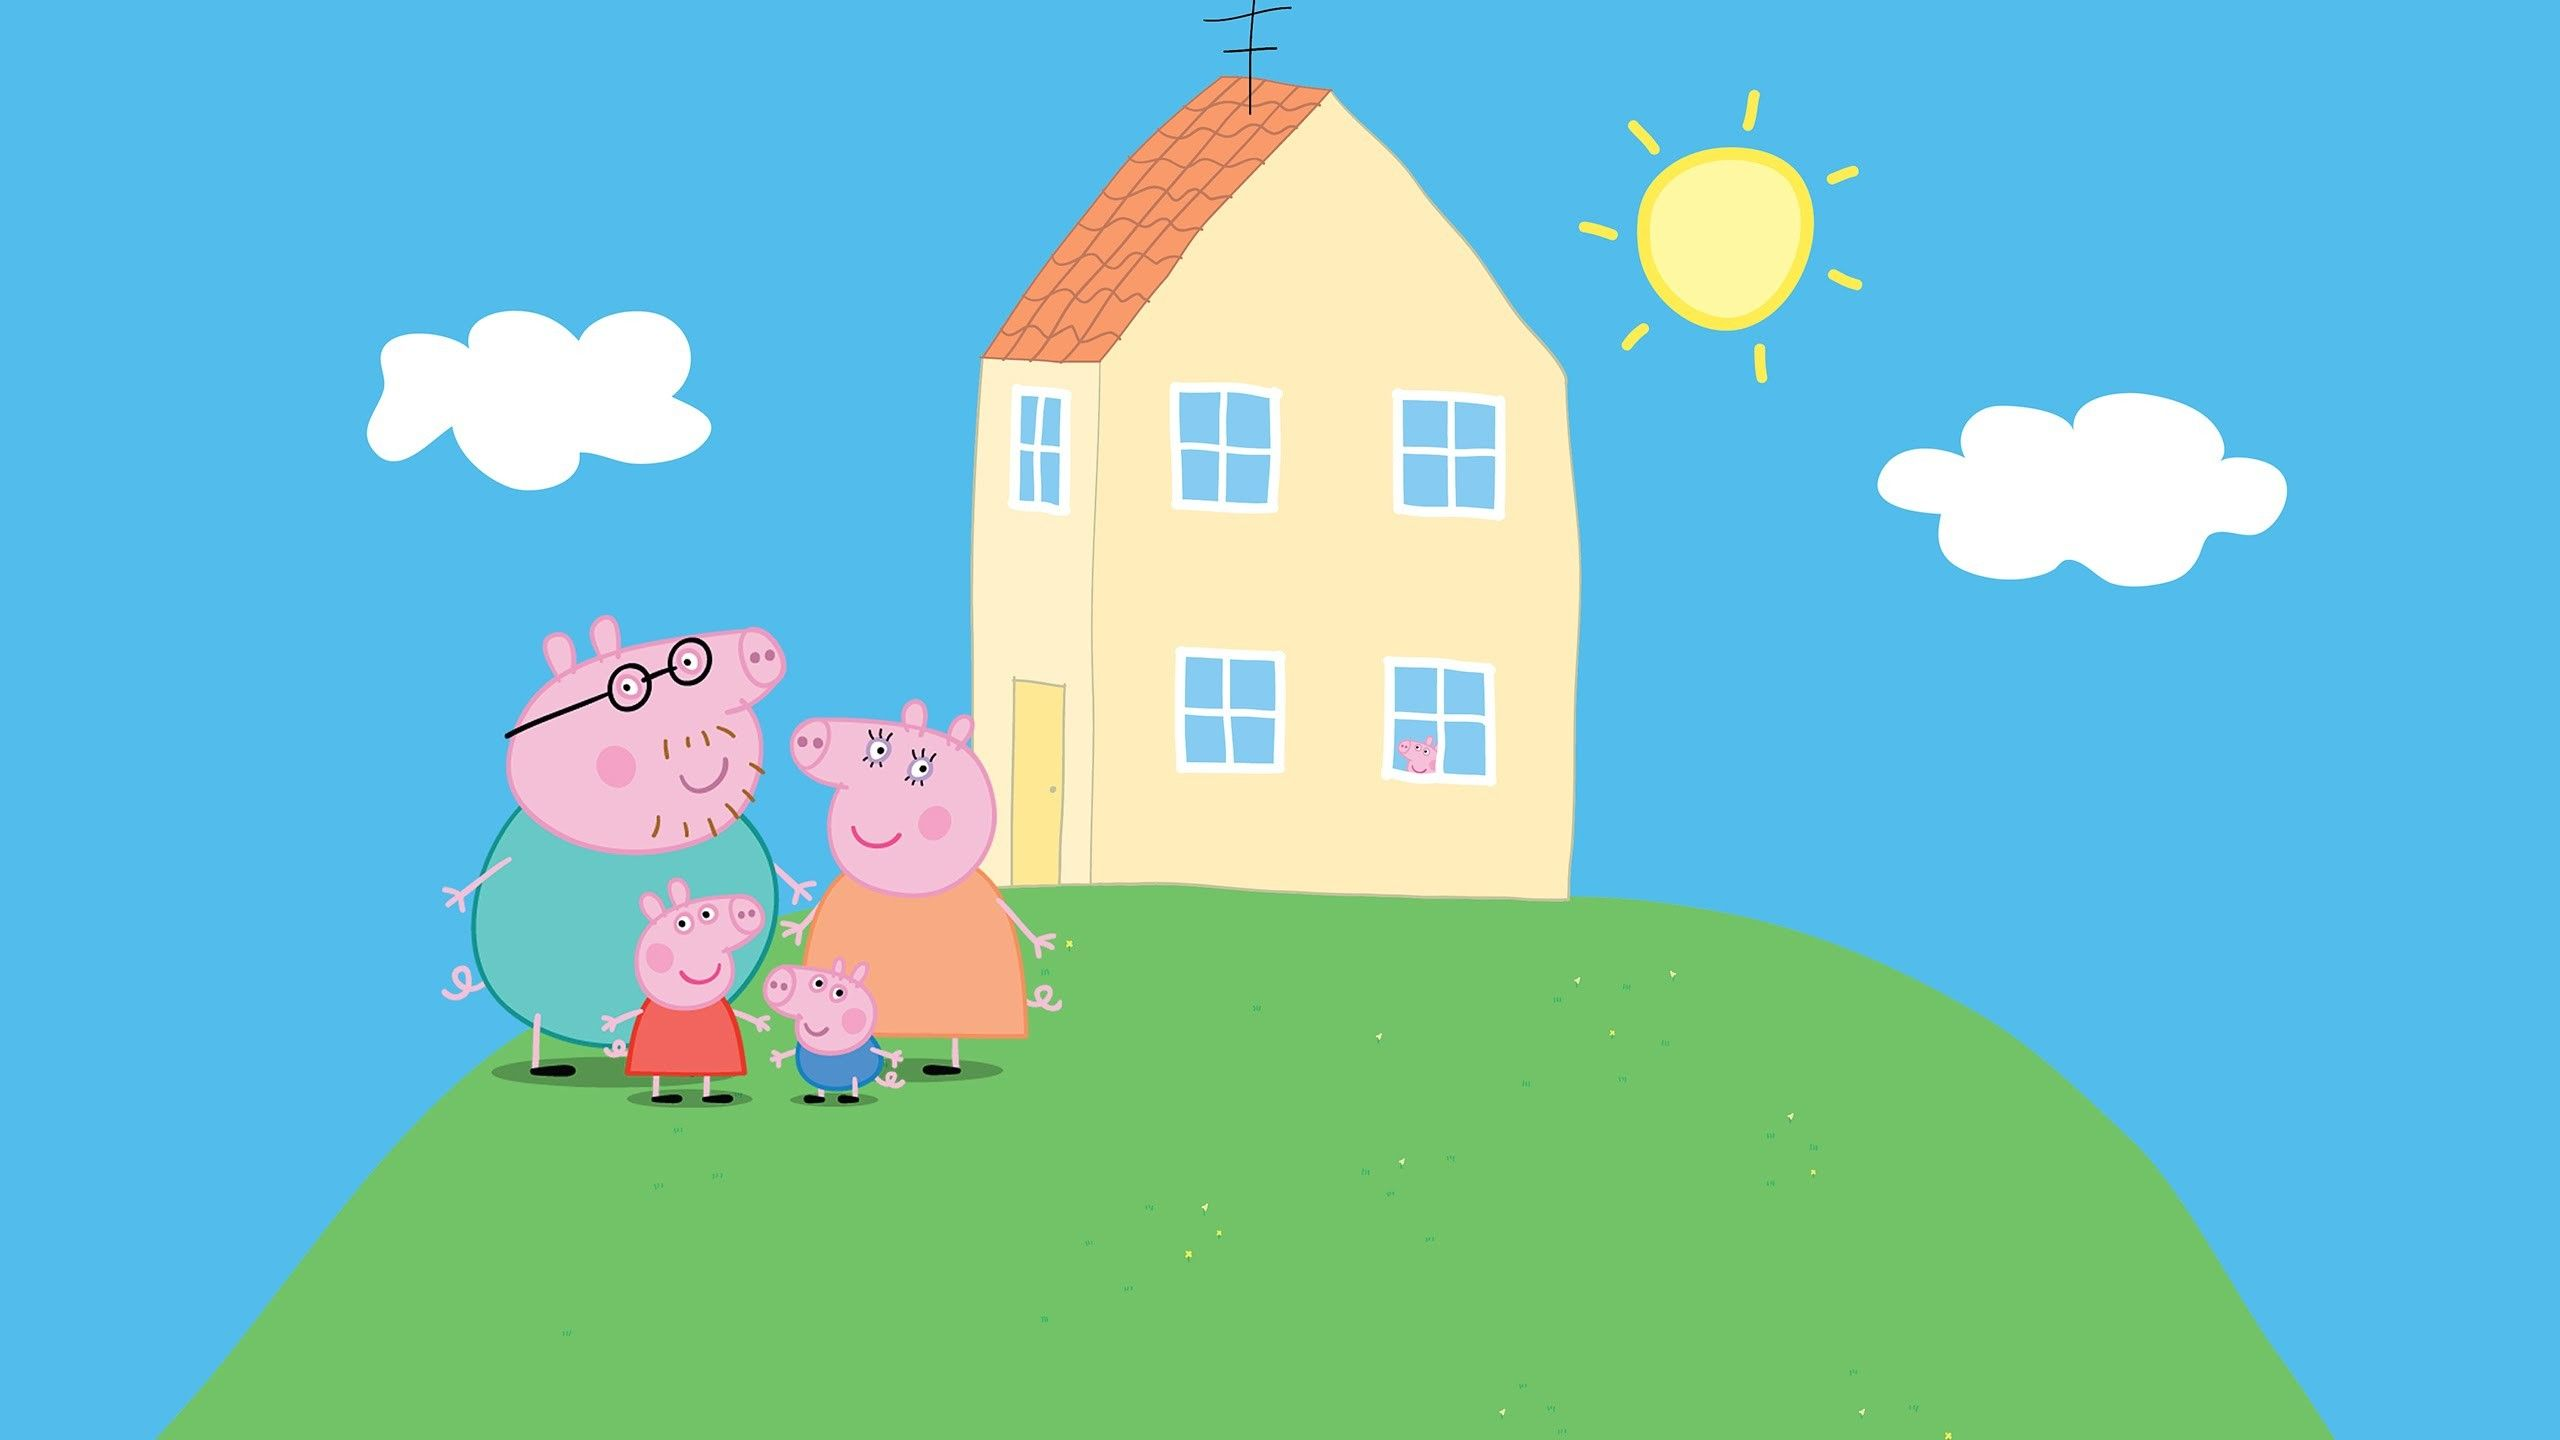 Peppa Pig House Wallpapers   Top Peppa Pig House Backgrounds 2560x1440